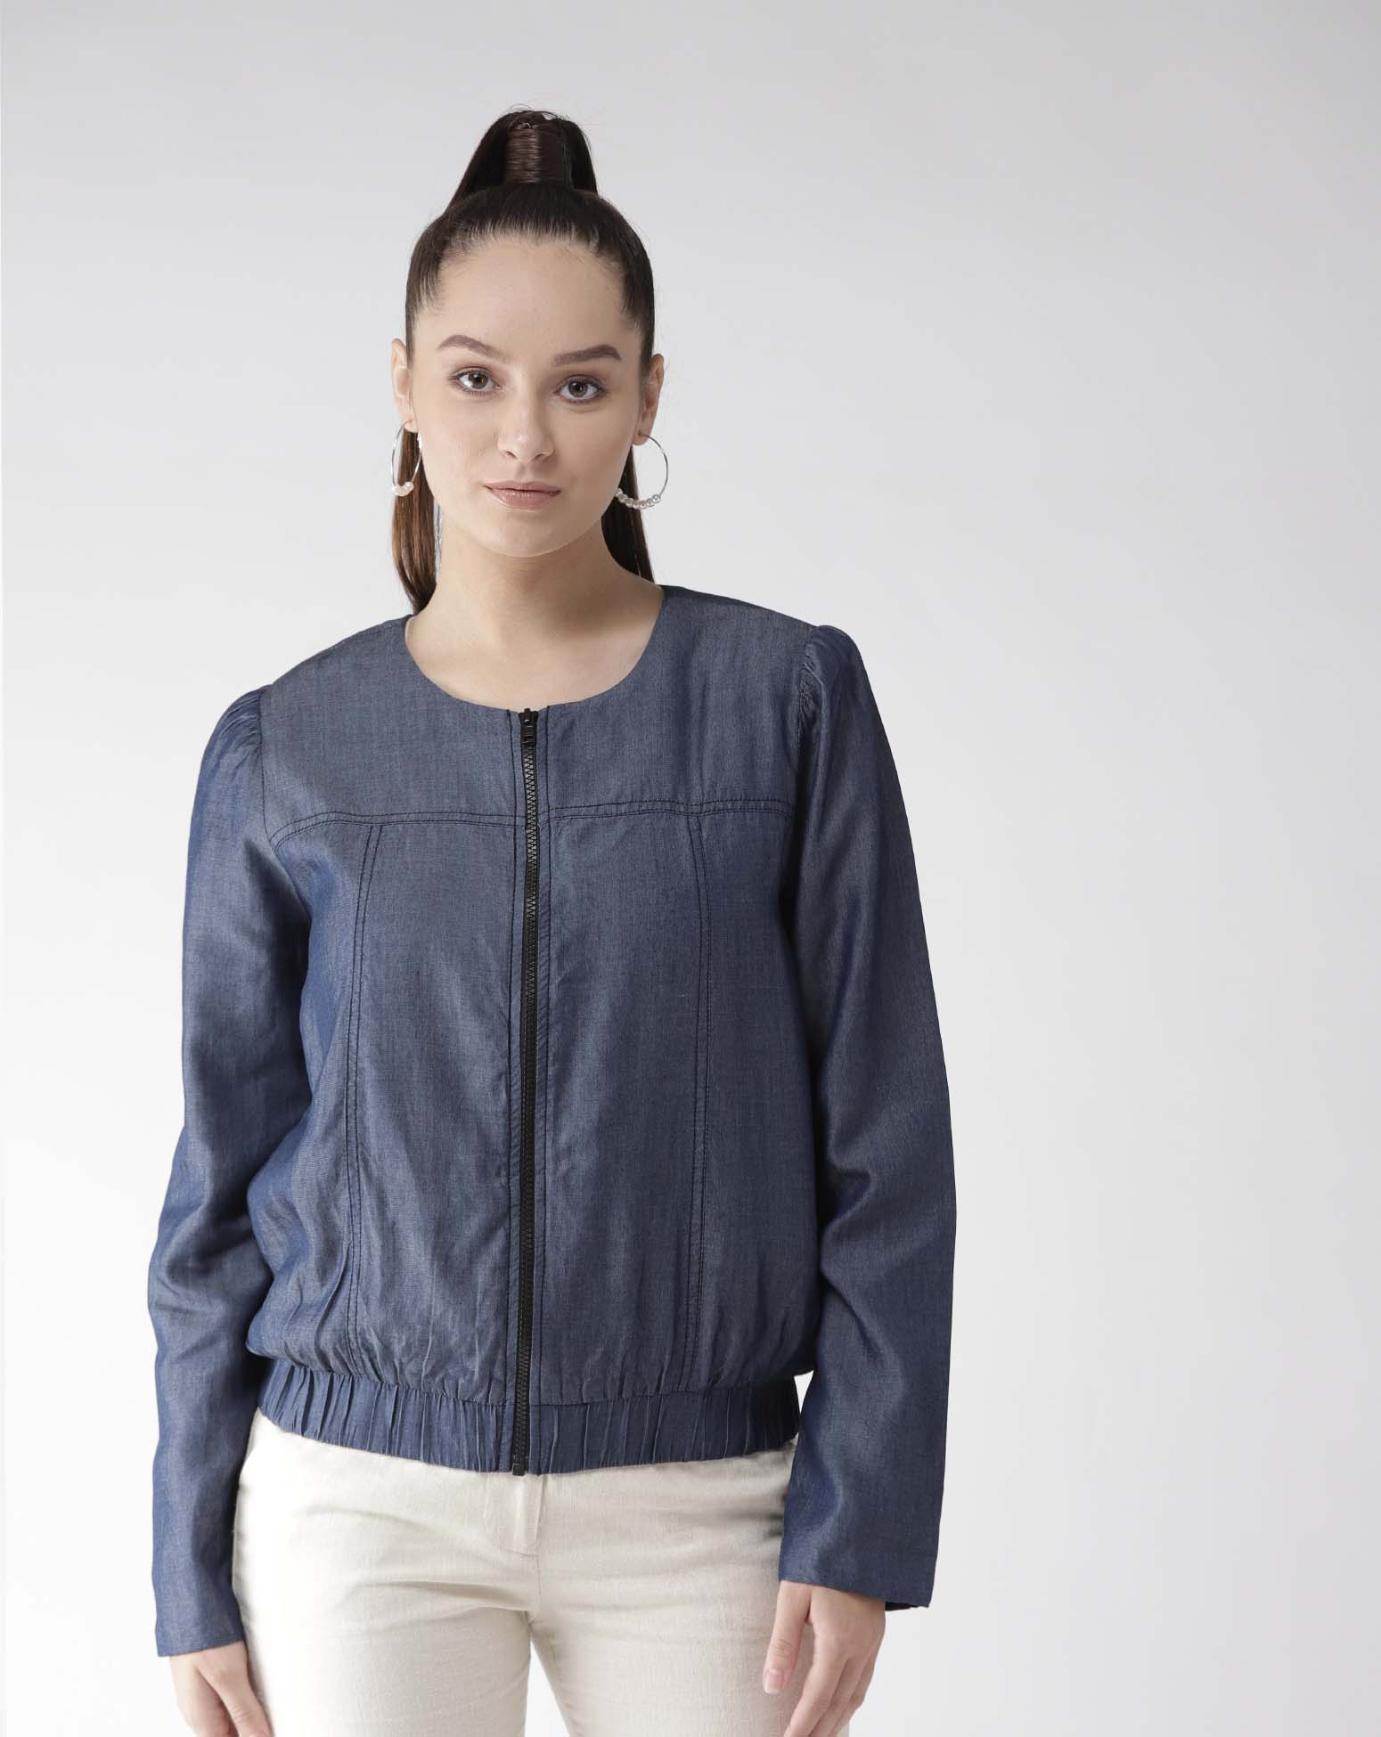 Chambray Jacket with front zipper & Pockets